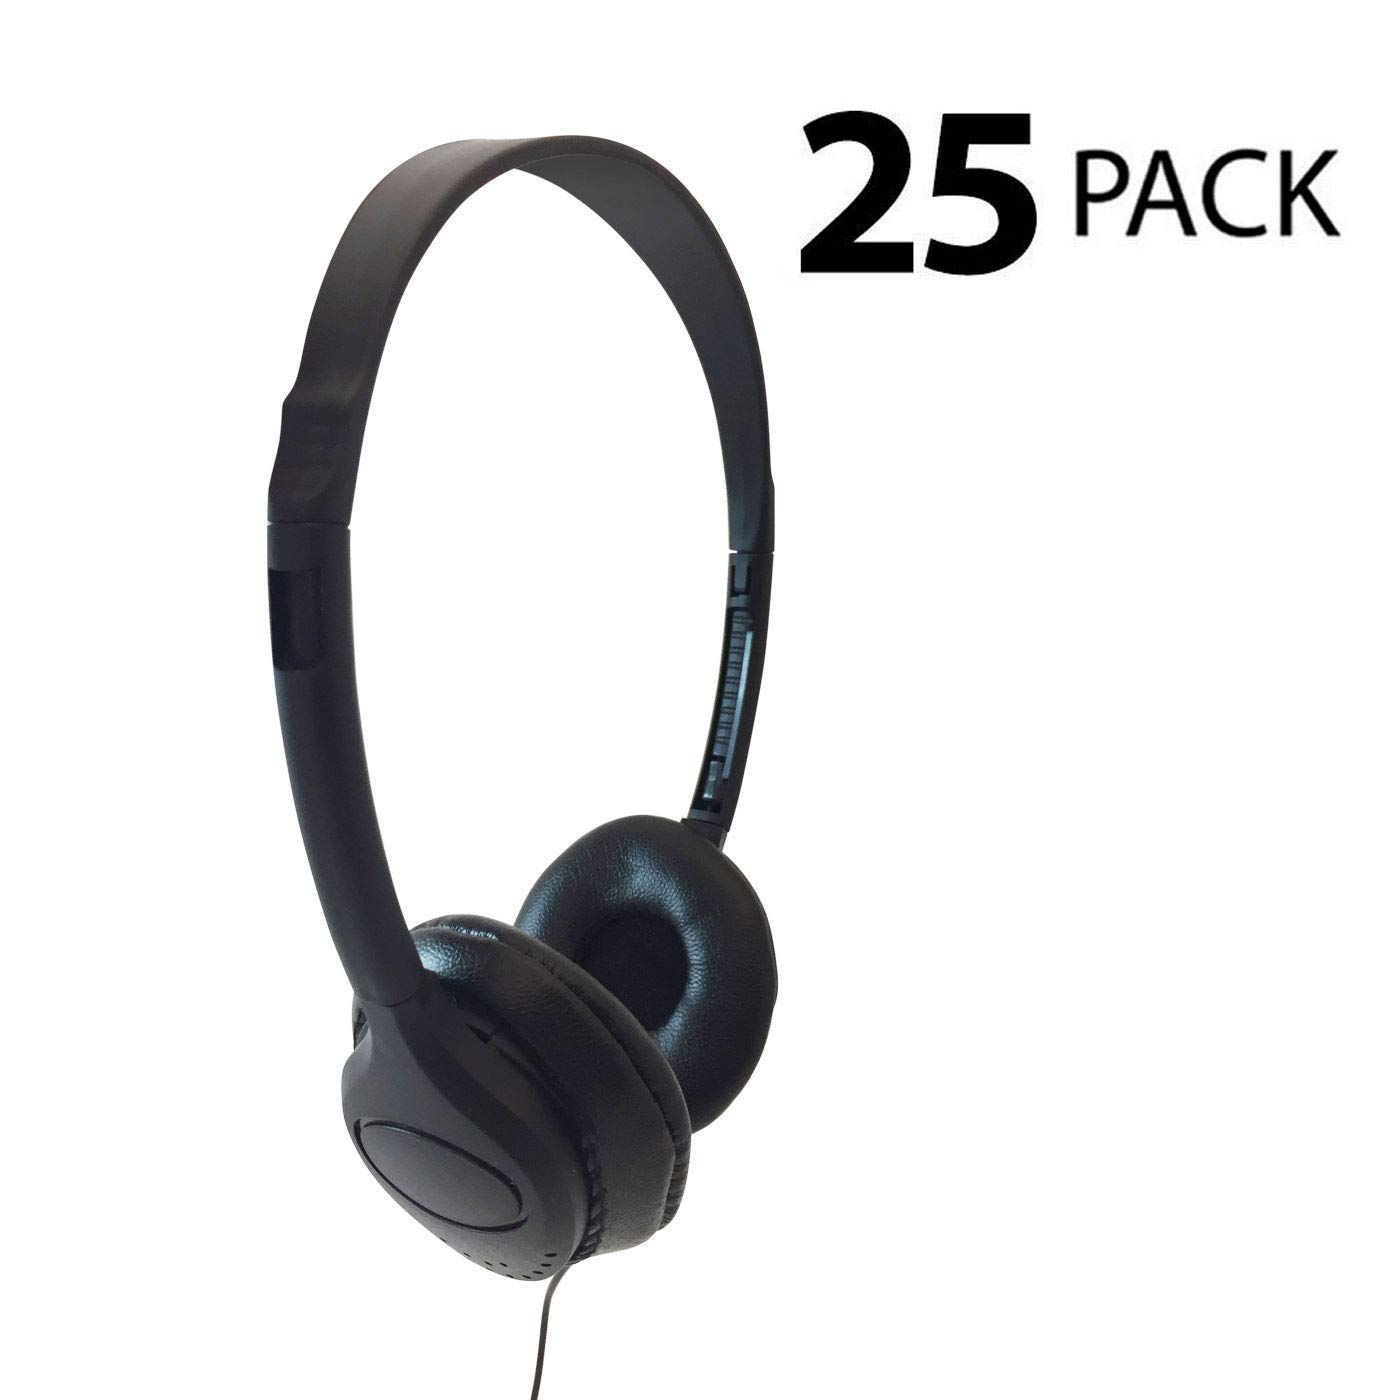 Encore ENC-313 Classroom Stereo Bulk Headphones with Leatherette Earpads - 25 Pack by IFENC